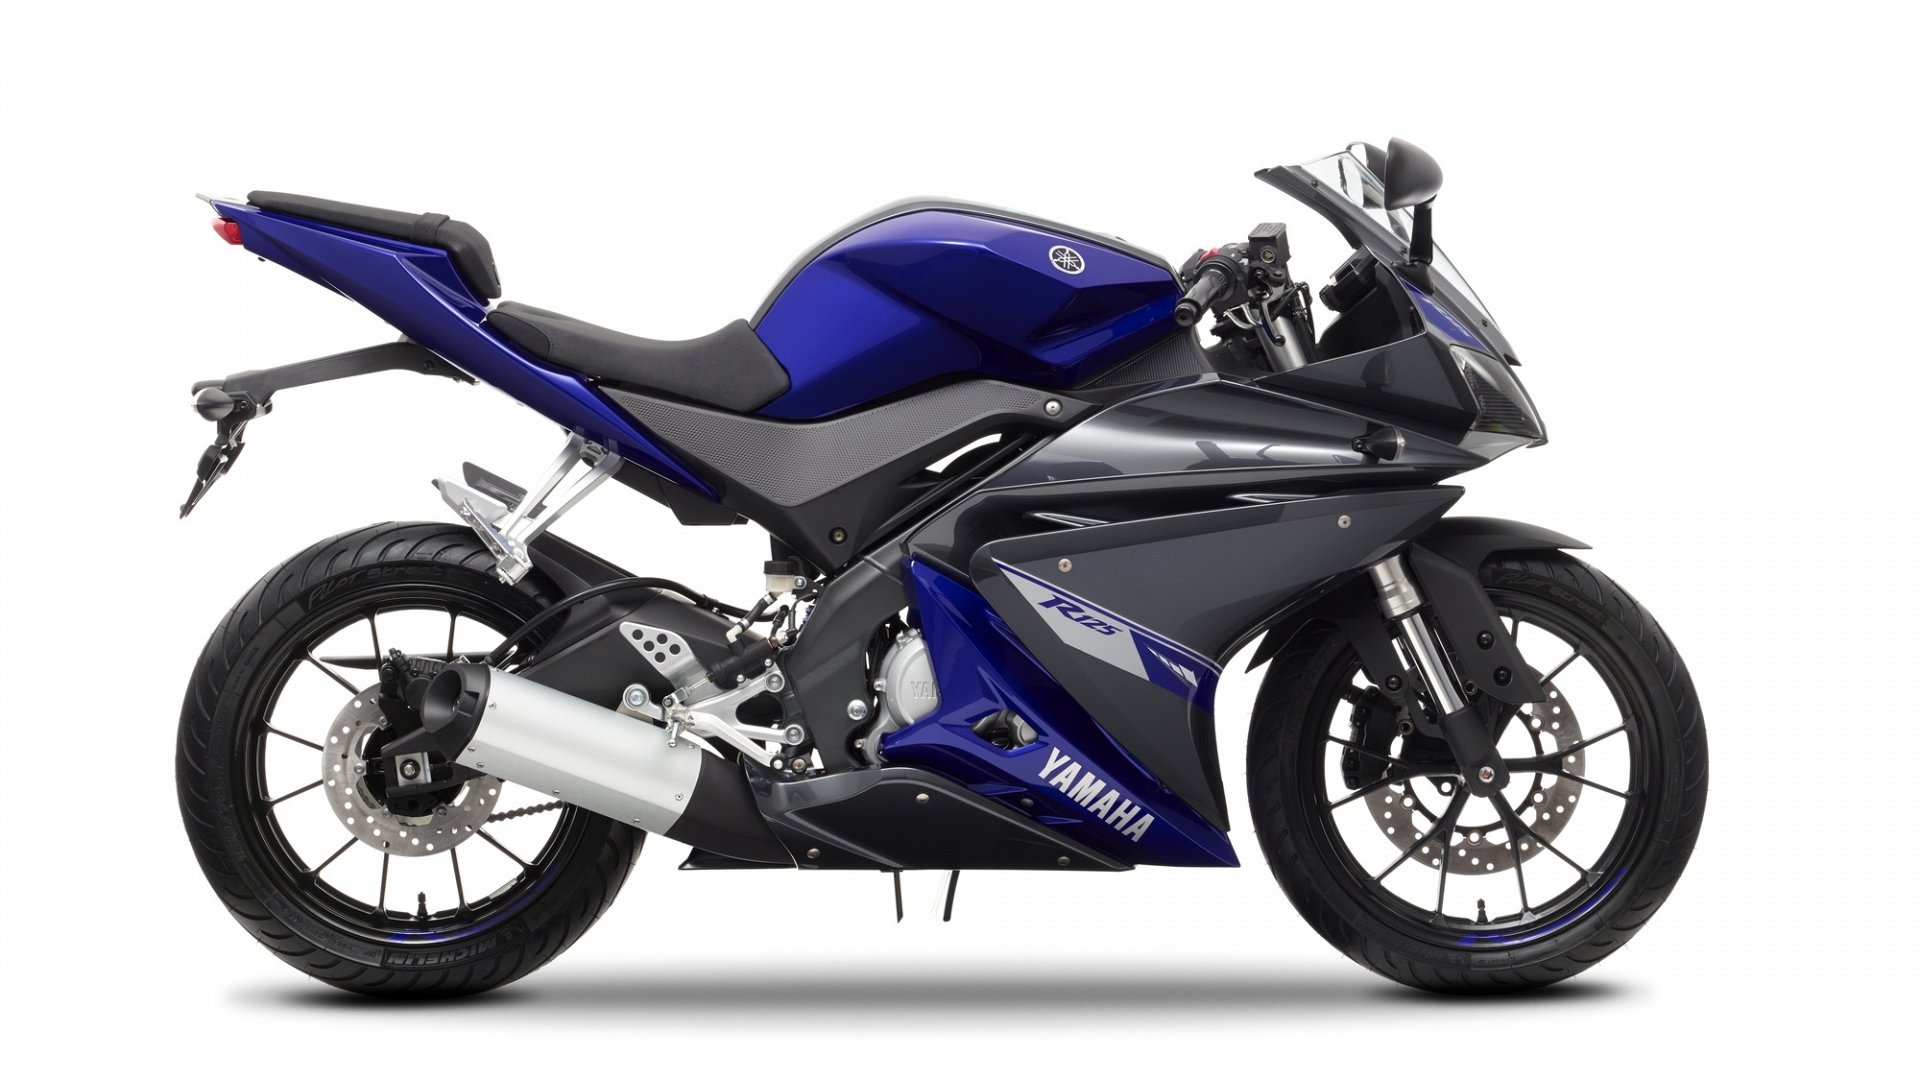 New Yamaha for sale. Finance available and part exchange welcome ...: www.cmcbikes.com/new-yamaha-motorcycles/2014-yamaha-yzf-r125